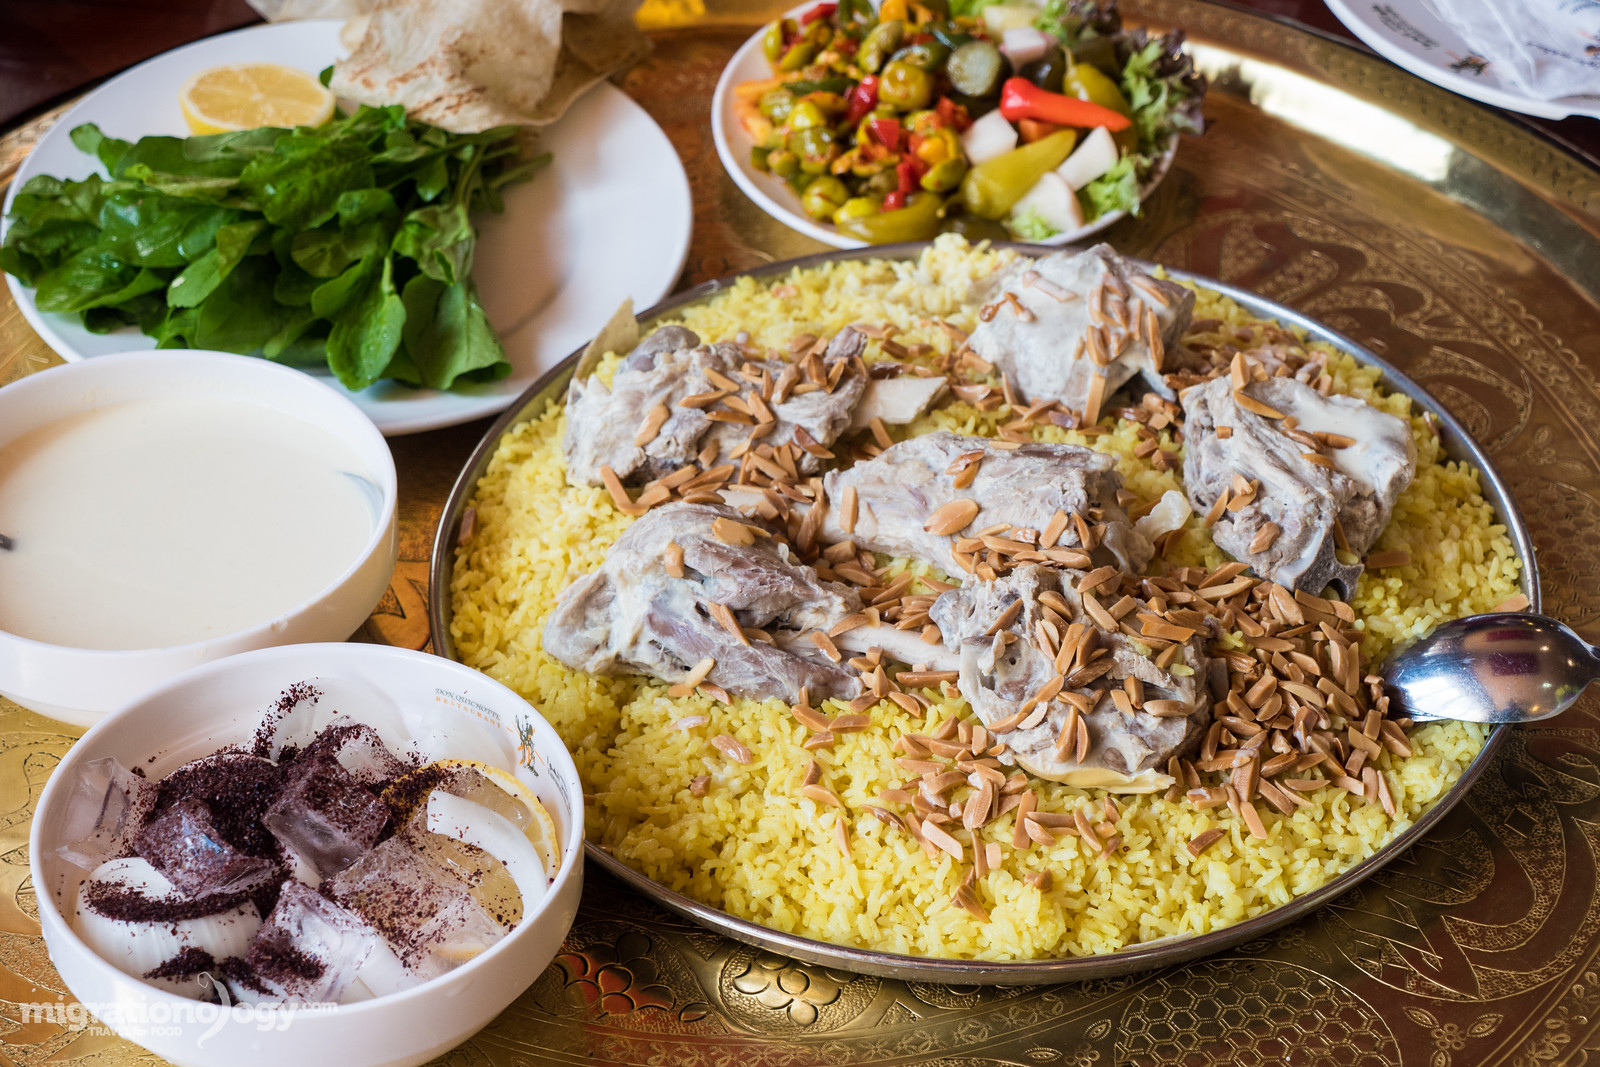 what is the national dish of Jordan